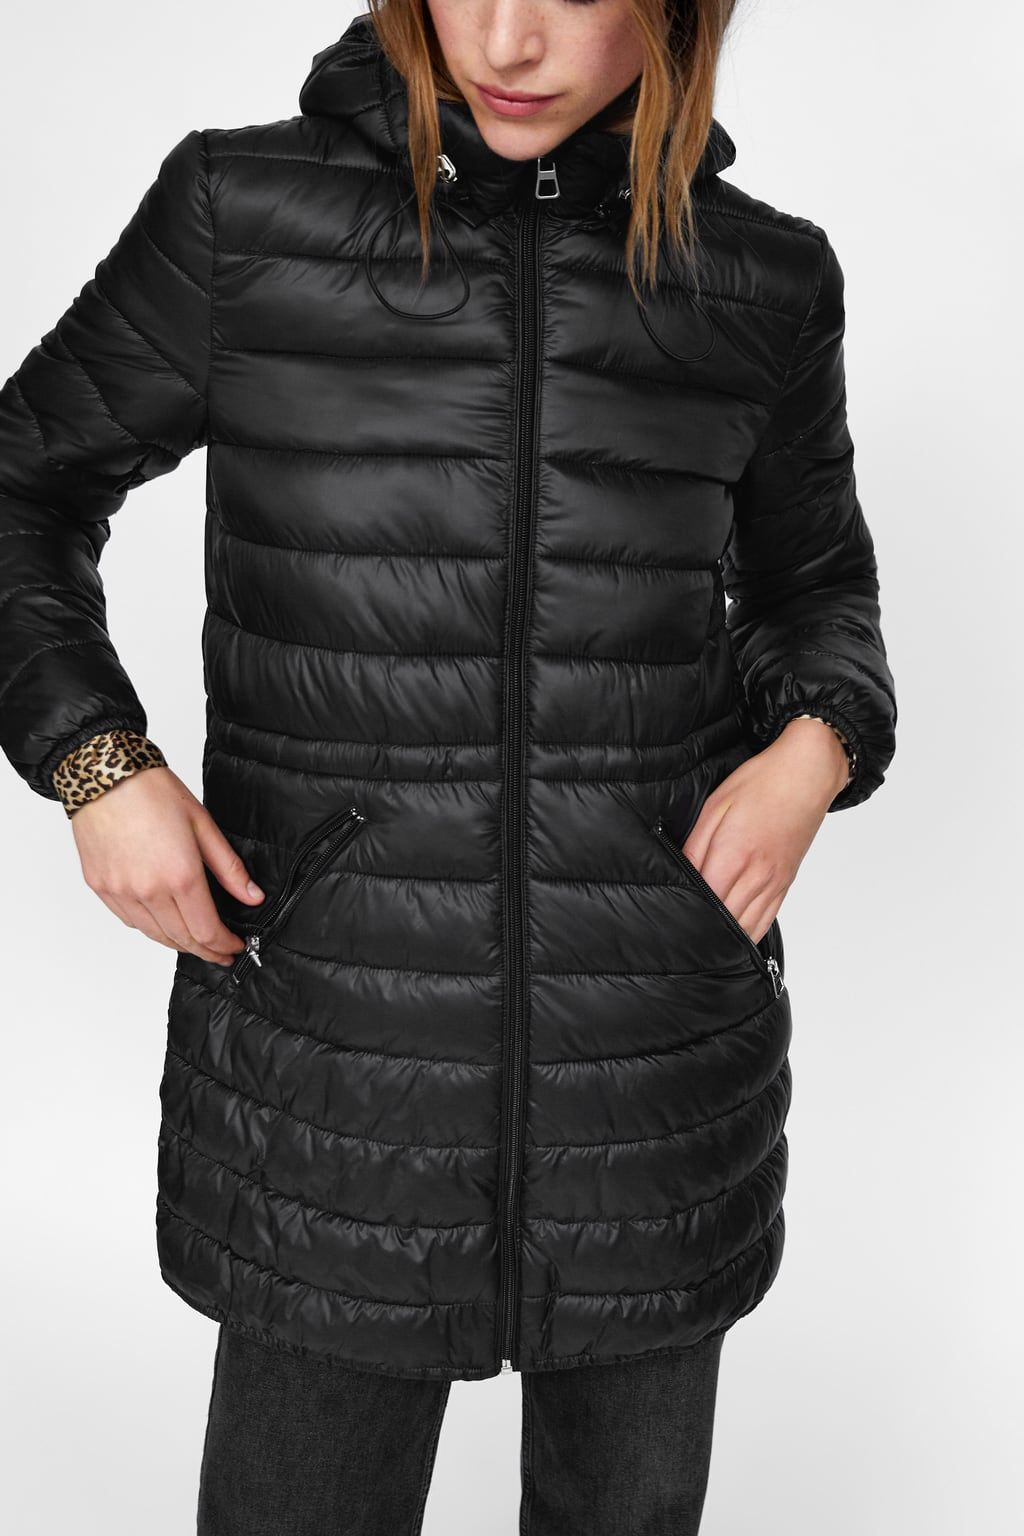 Image 2 Of Lightweight Travel Puffer Coat From Zara Puffer Coat Puffer Coat [ 1536 x 1024 Pixel ]